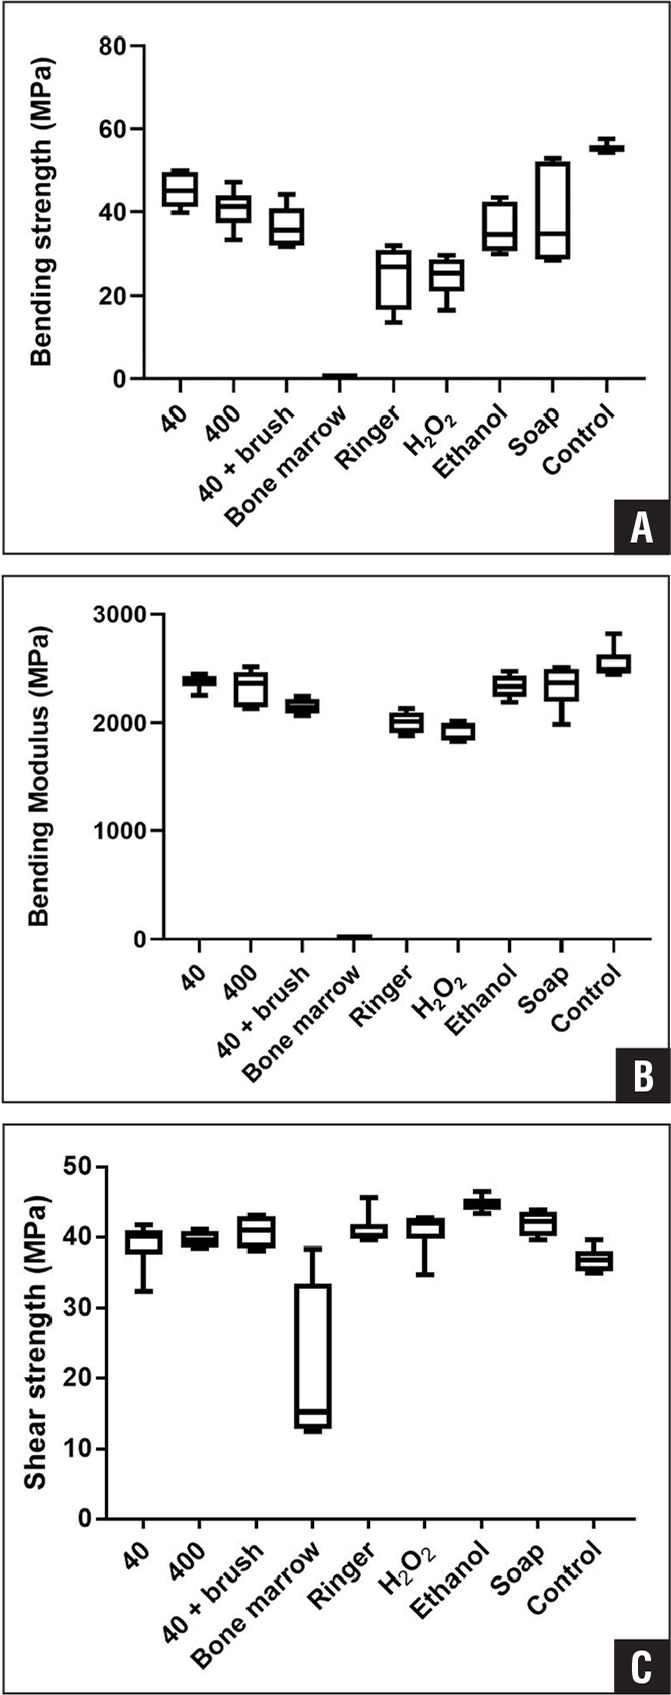 Box plots showing bending strength (A), bending modulus (B), and shear strength (C) of the cement–cement interface of all of the studied groups.